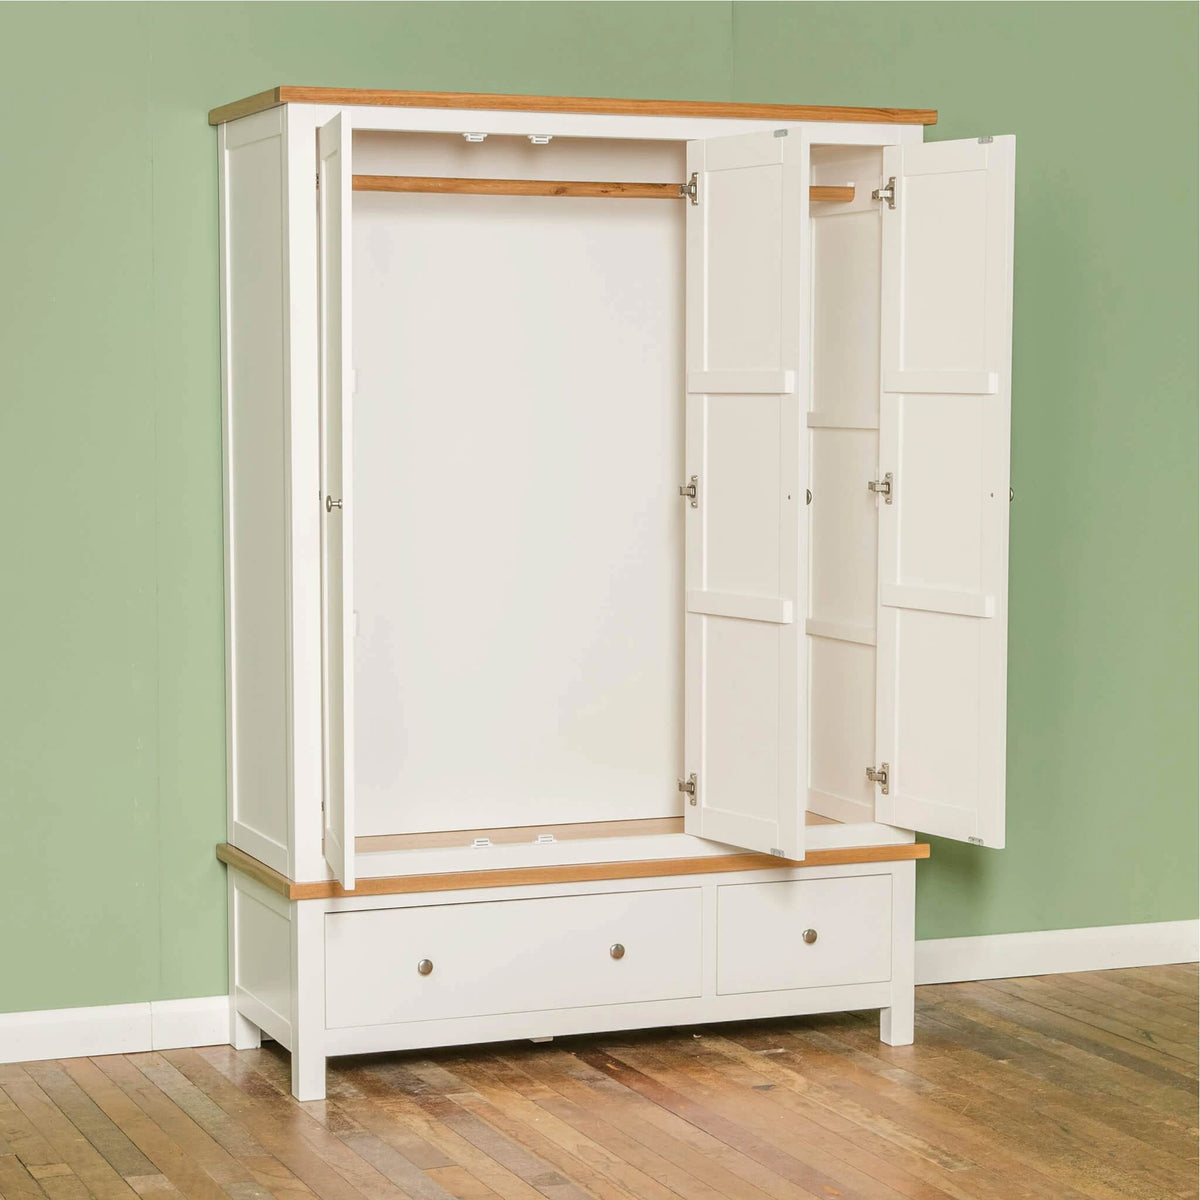 Farrow White Triple Wardrobe with doors open